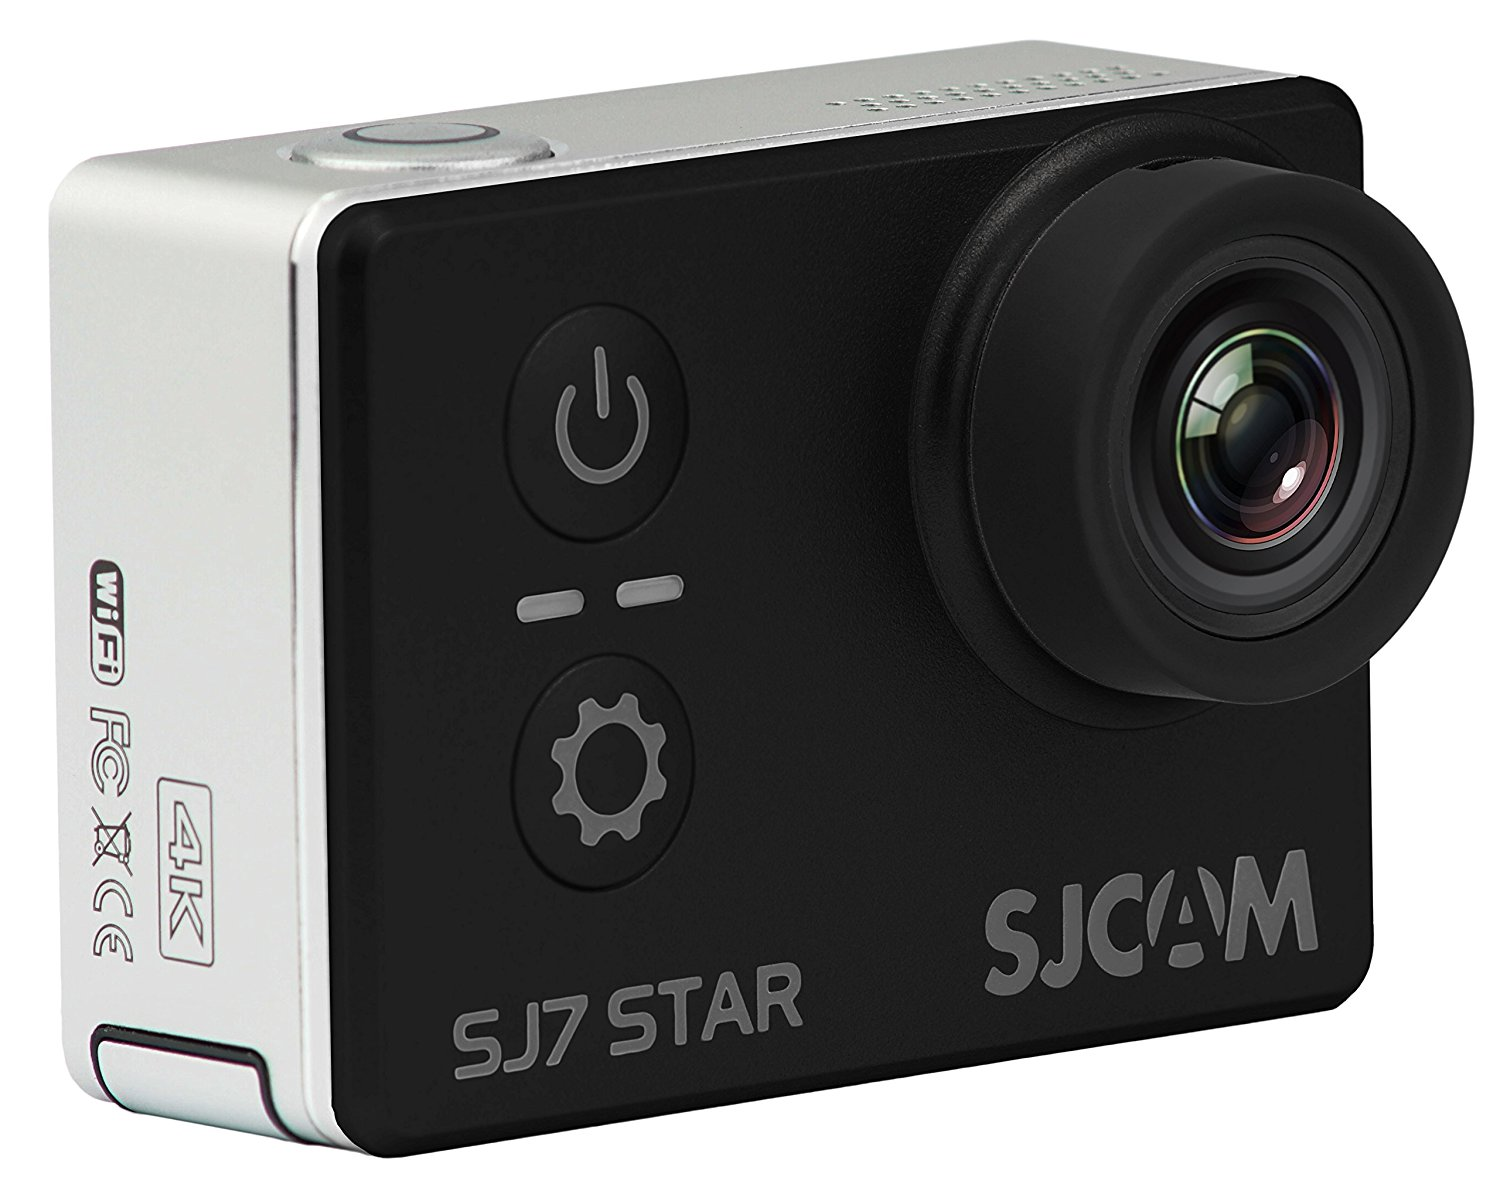 SJCAM S7 Price in Pakistan